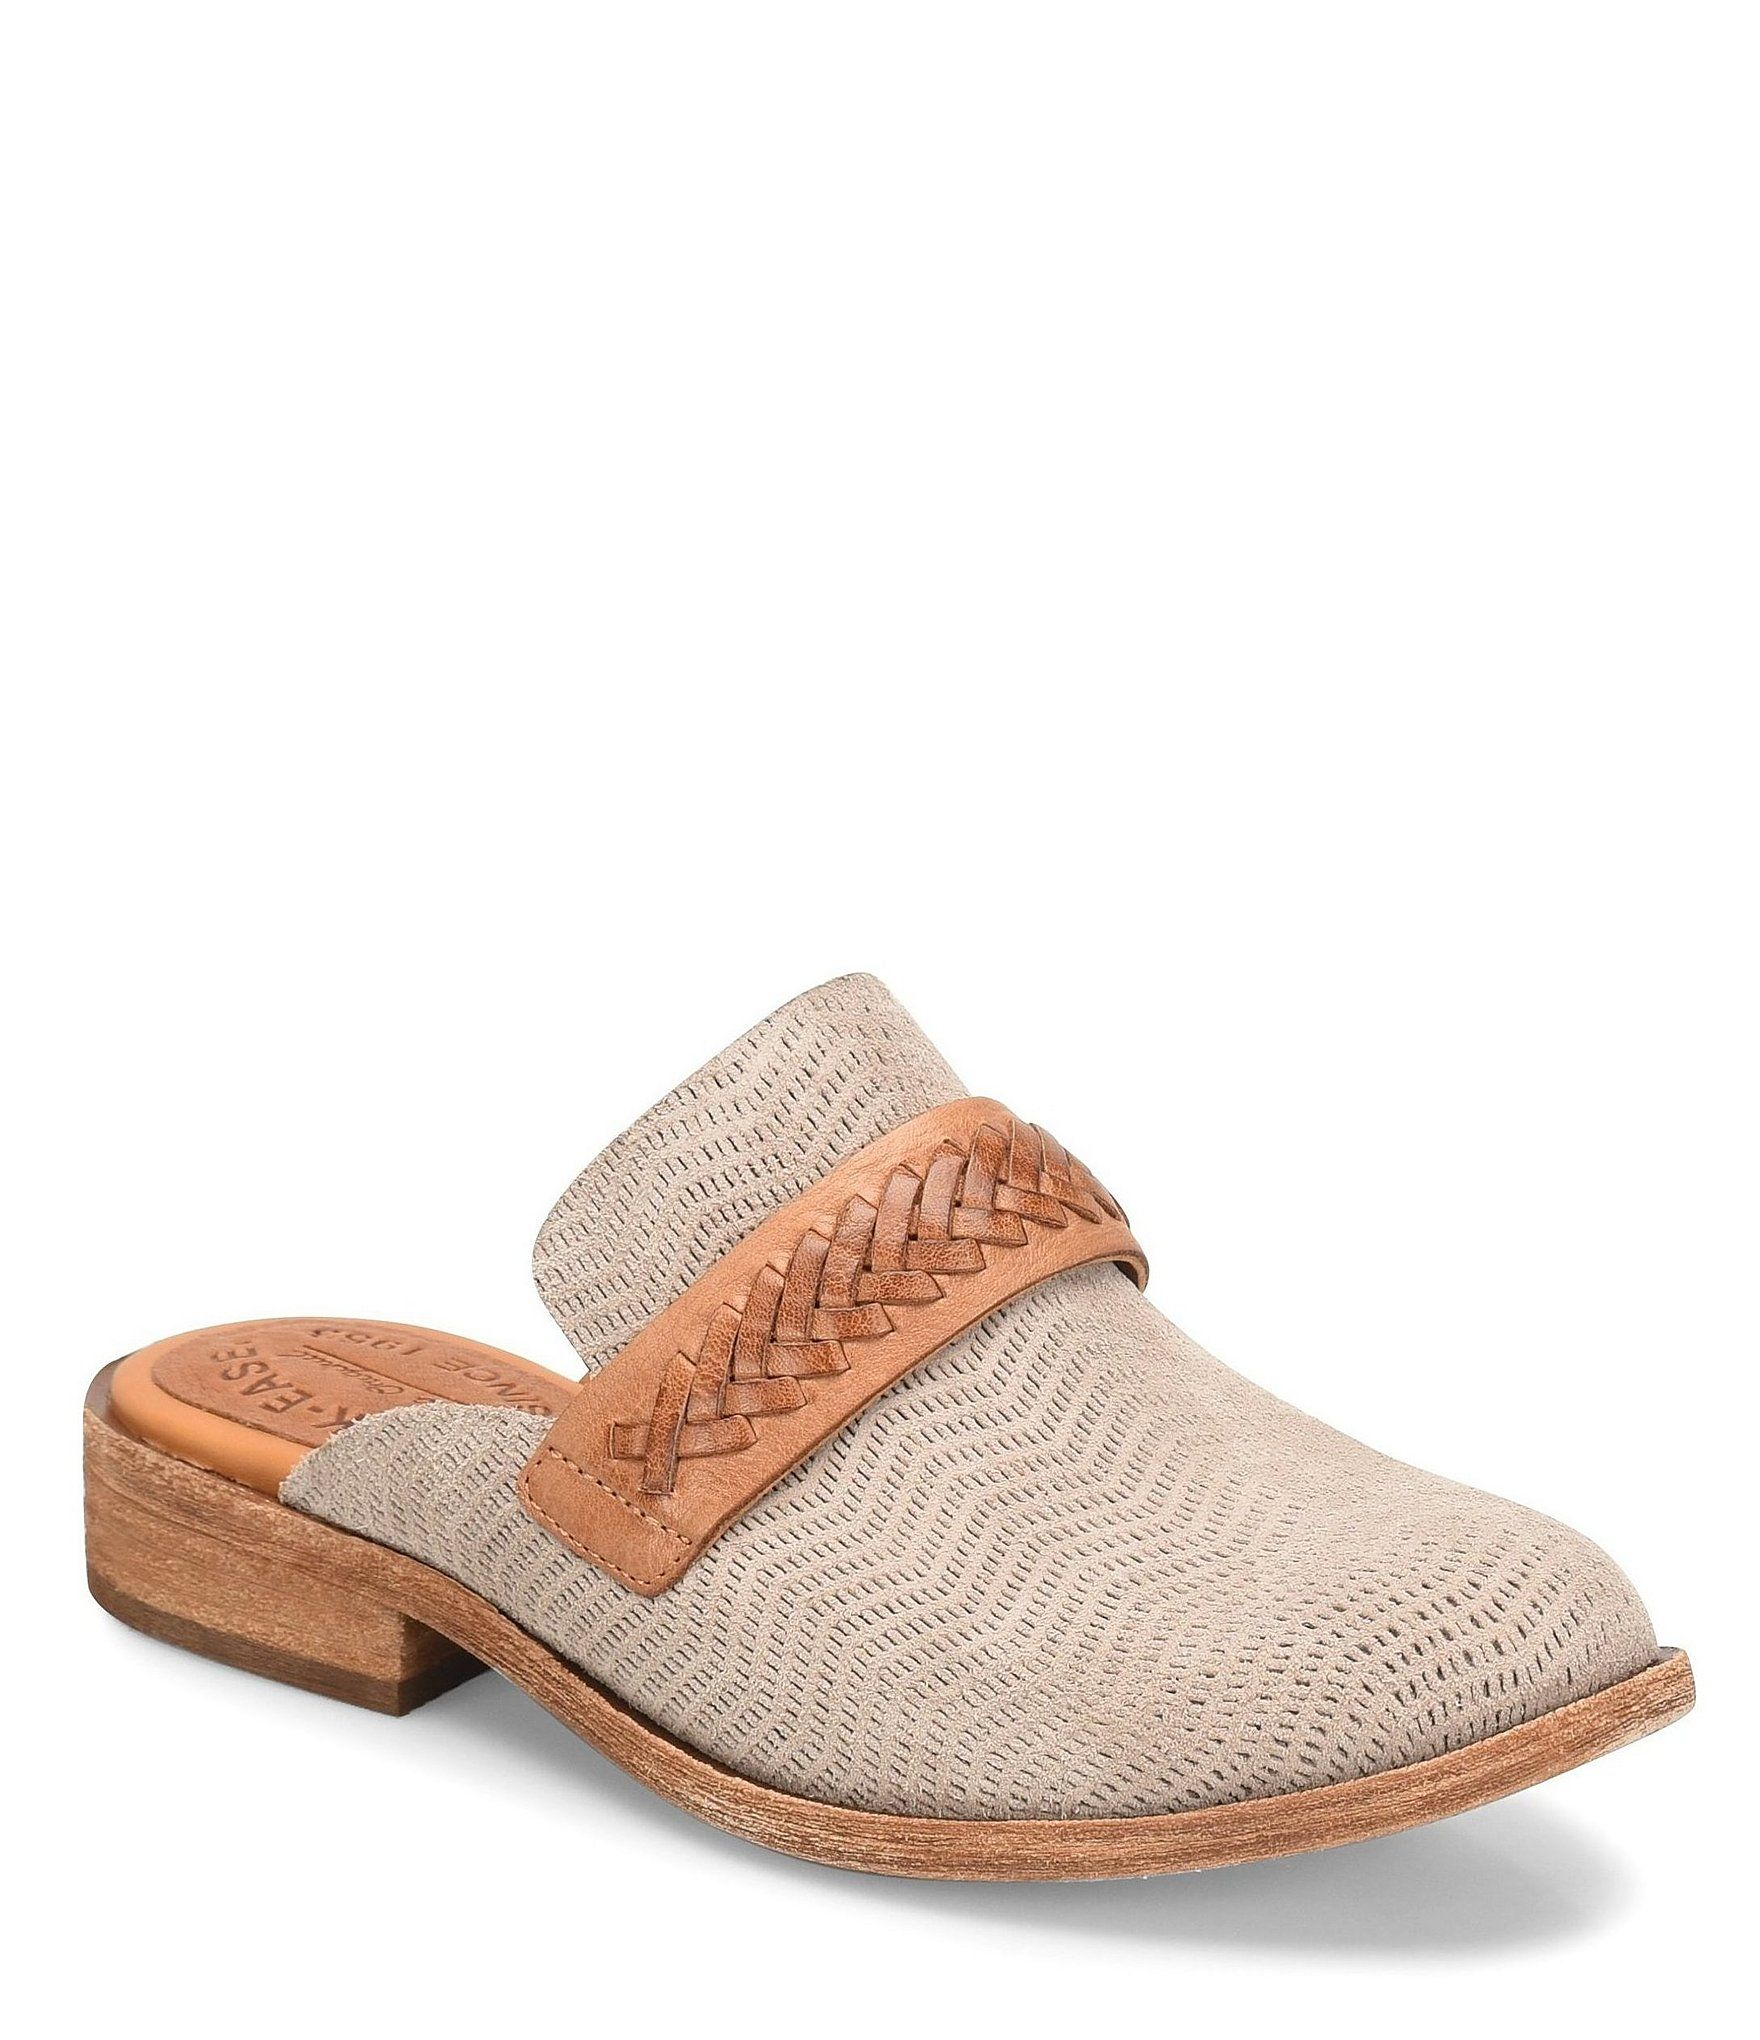 b9a73e9fb204 Shop for Kork-Ease Mabie Perforated Suede Mules at Dillards.com. Visit  Dillards.com to find clothing